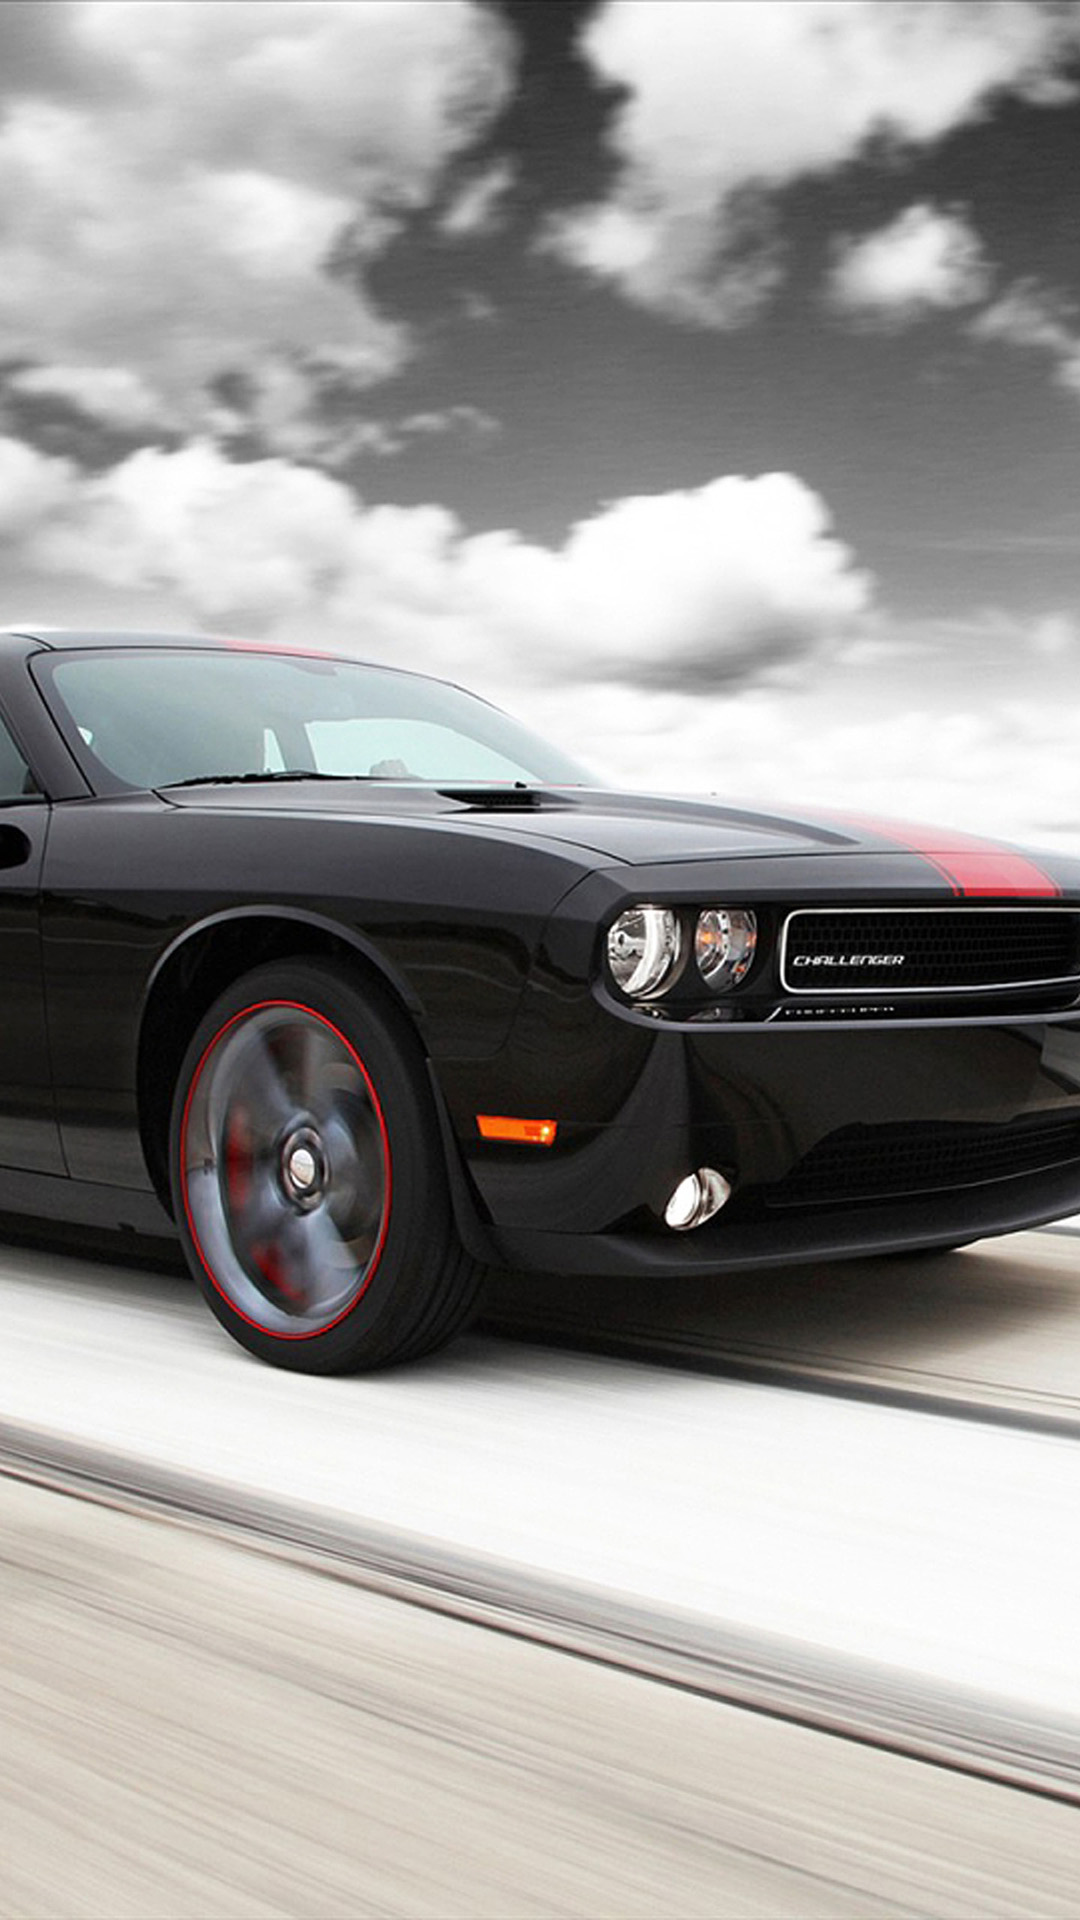 46 Dodge Challenger Iphone Wallpaper On Wallpapersafari